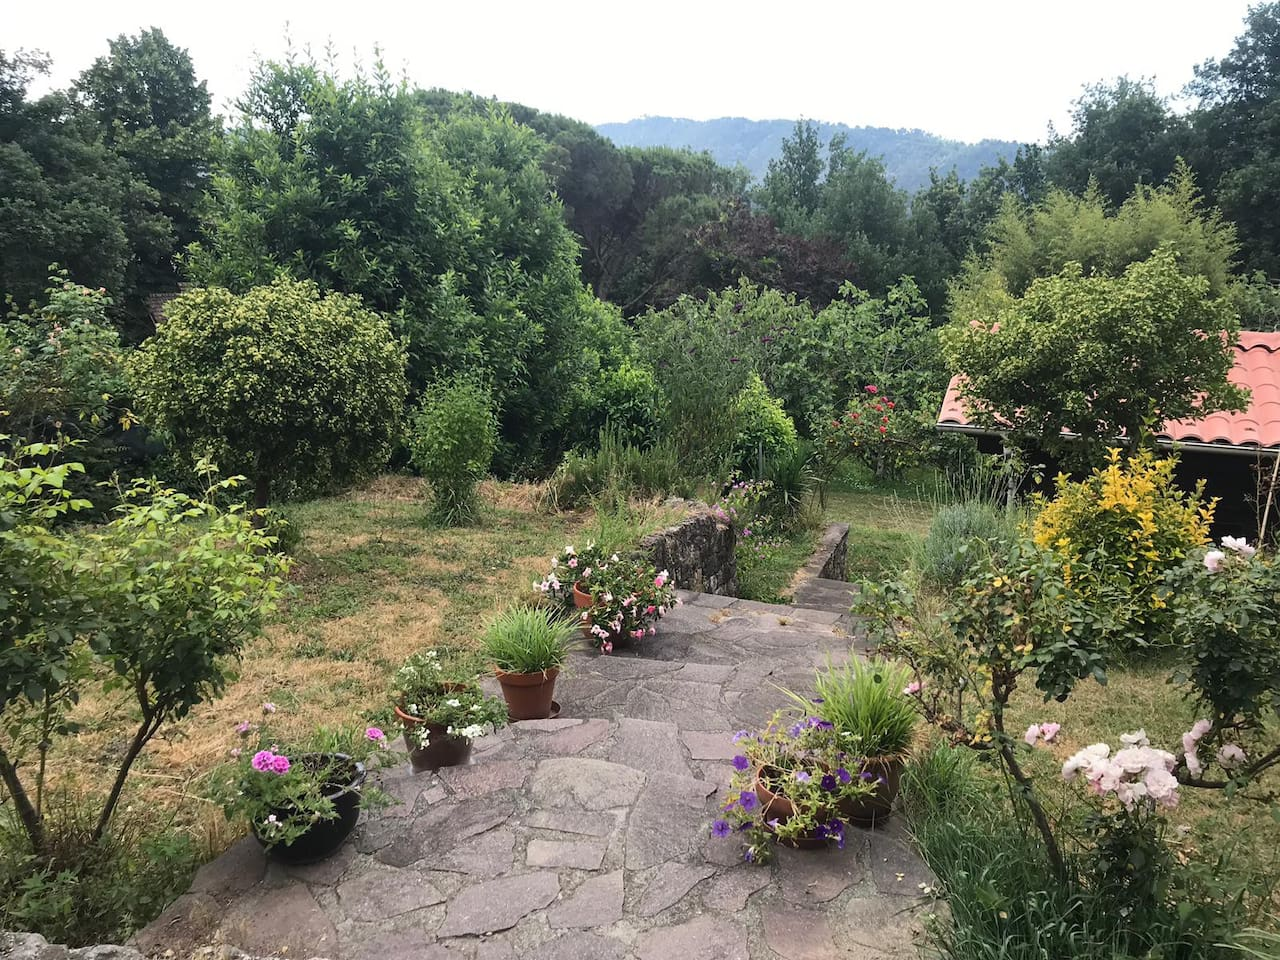 Over view of the garden